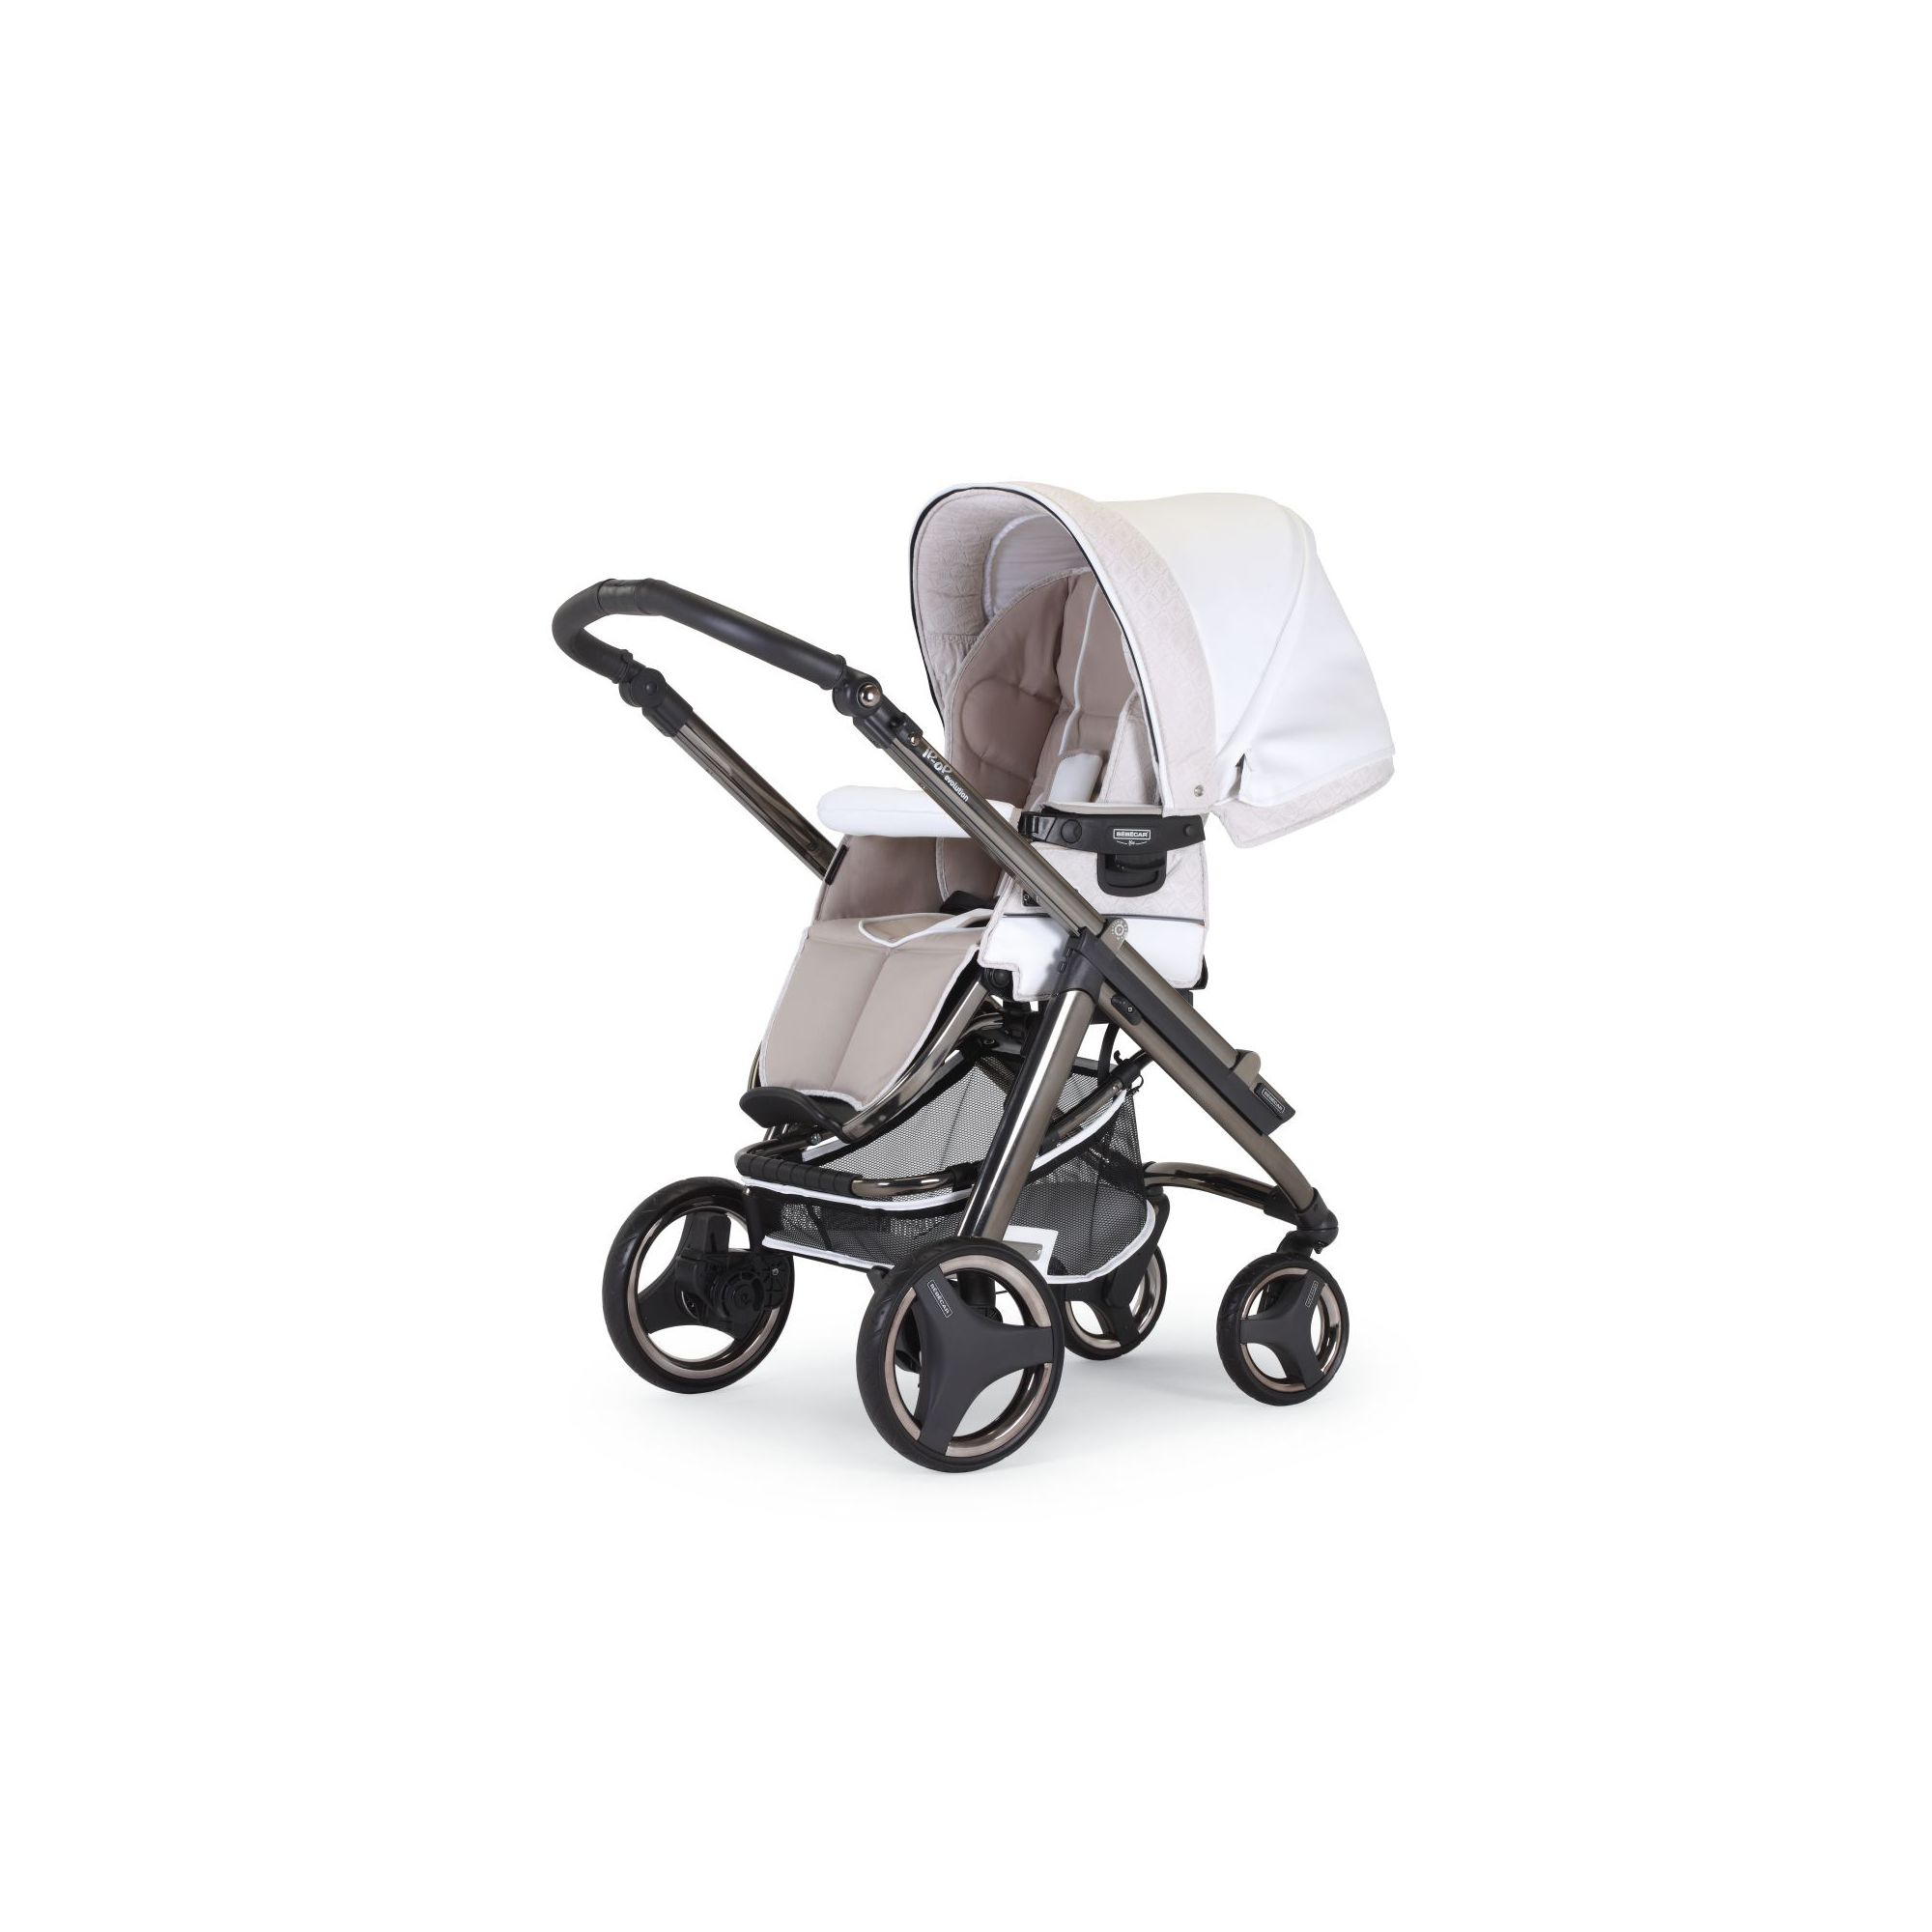 Bebecar Ip-Op SE Evolution Pushchair Milano at Tesco Direct